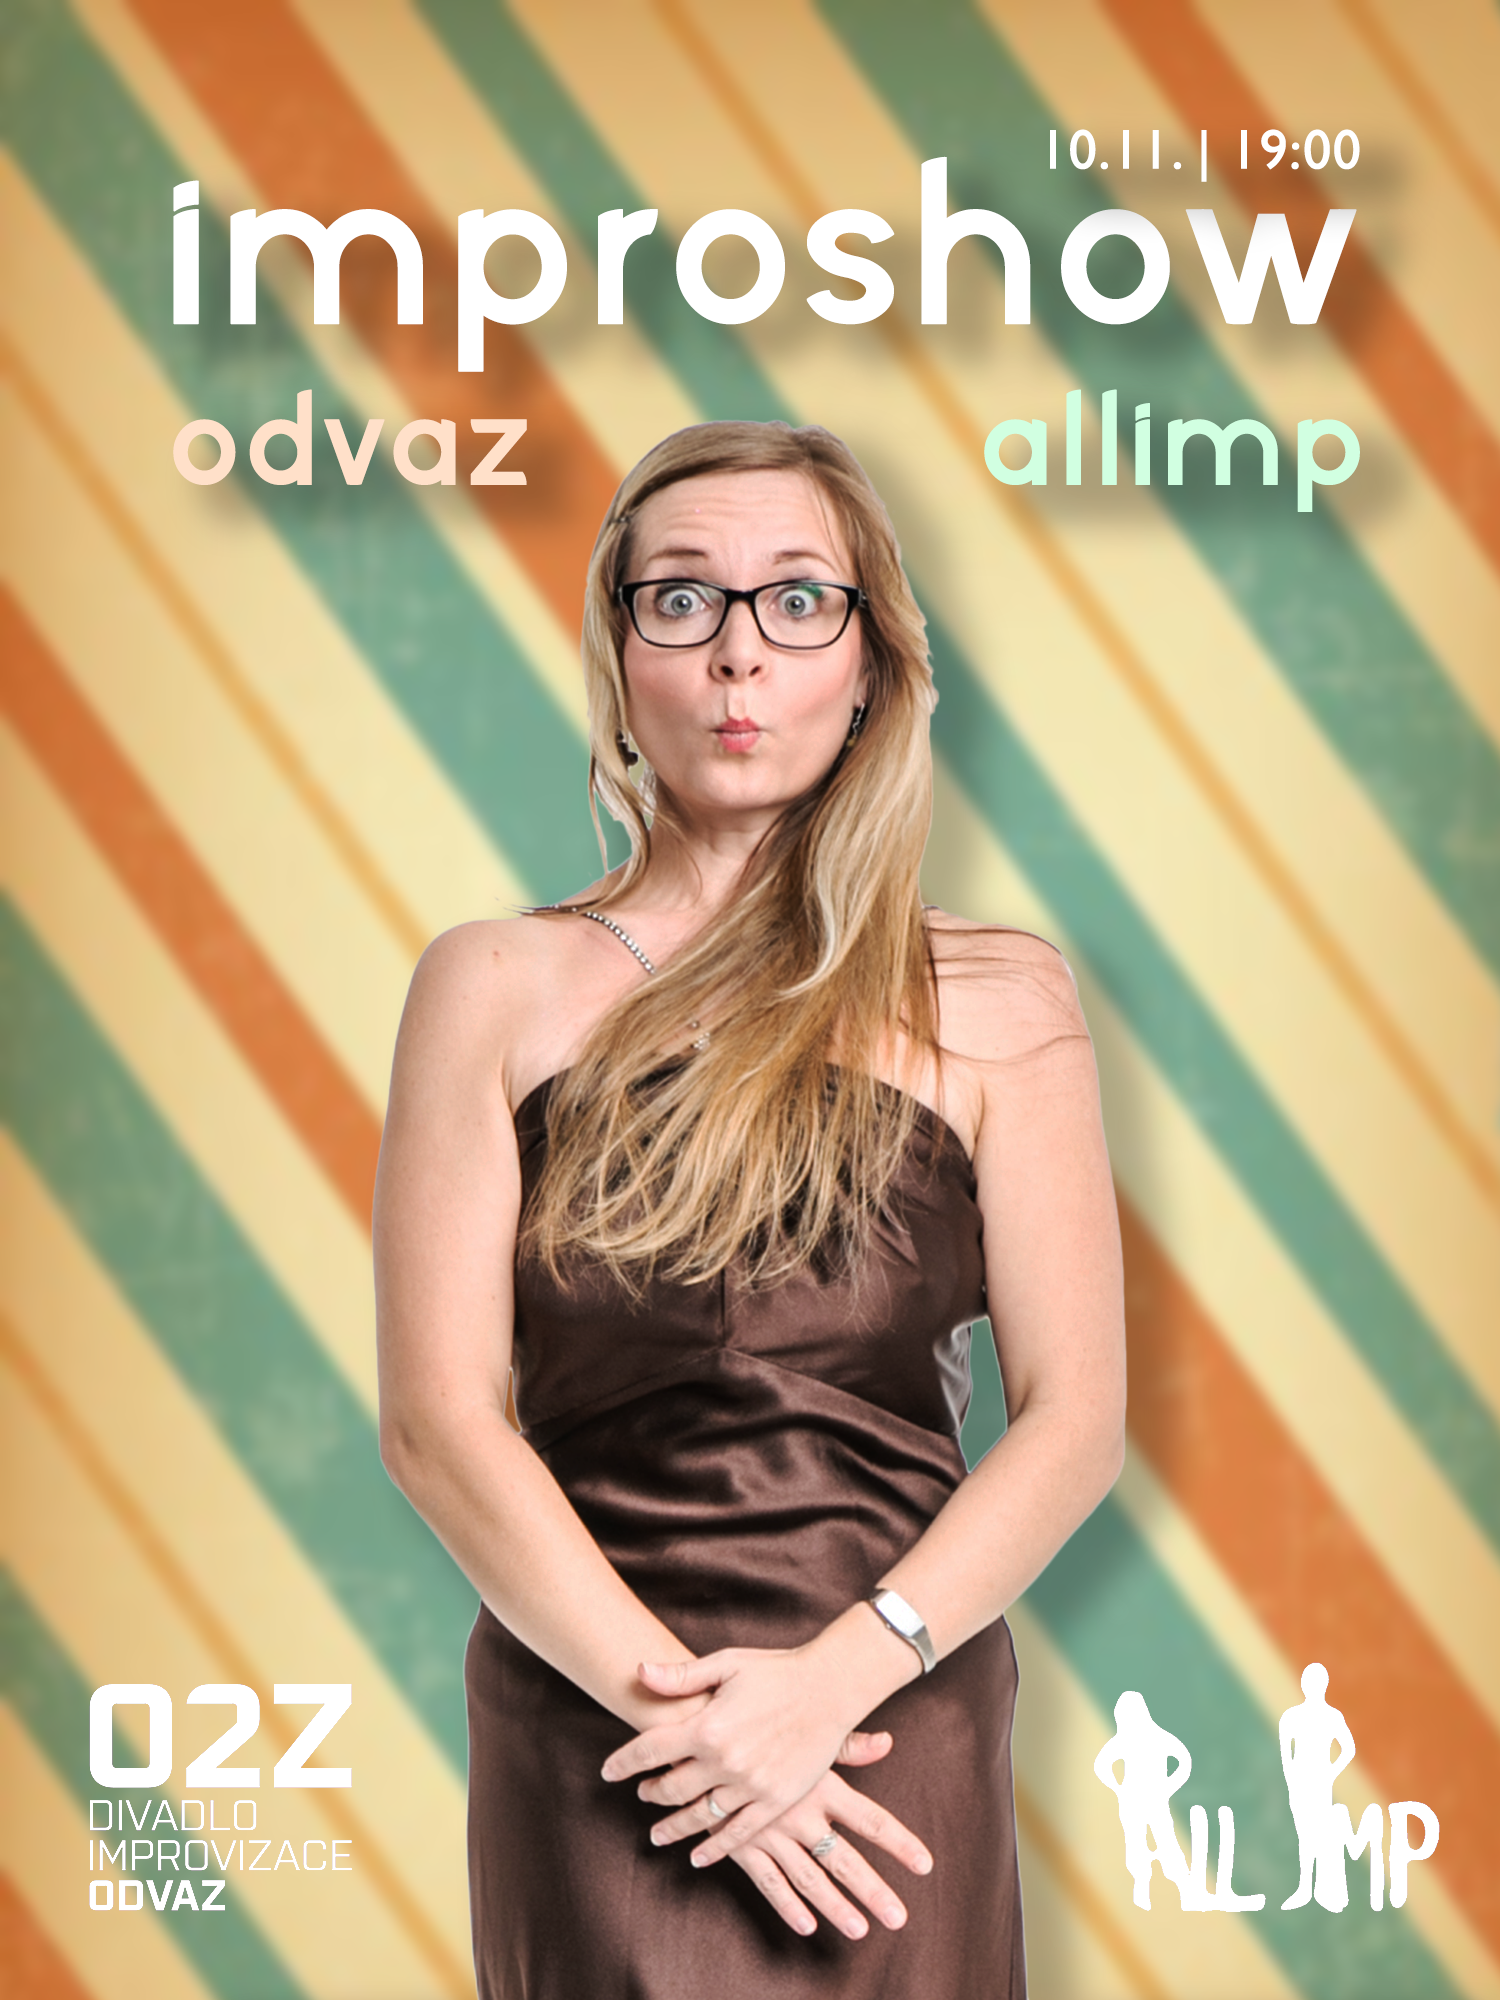 Improshow All Imp & Odvaz